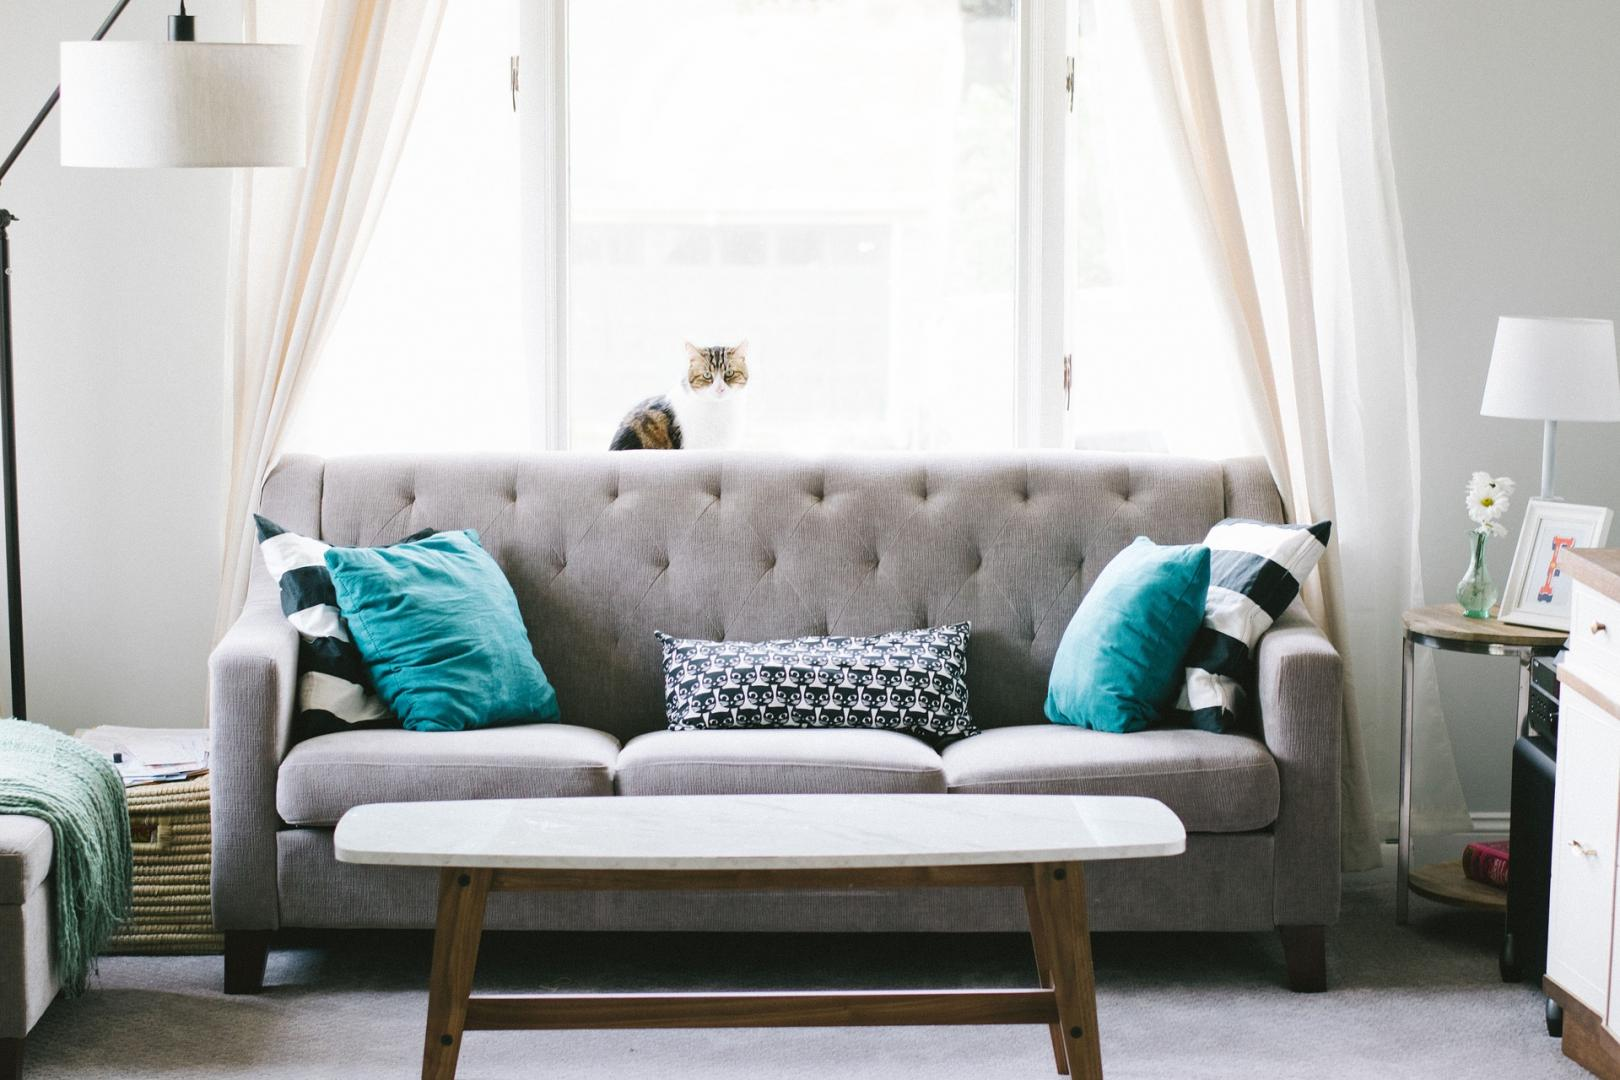 Best Decorative Pillows for Your Space